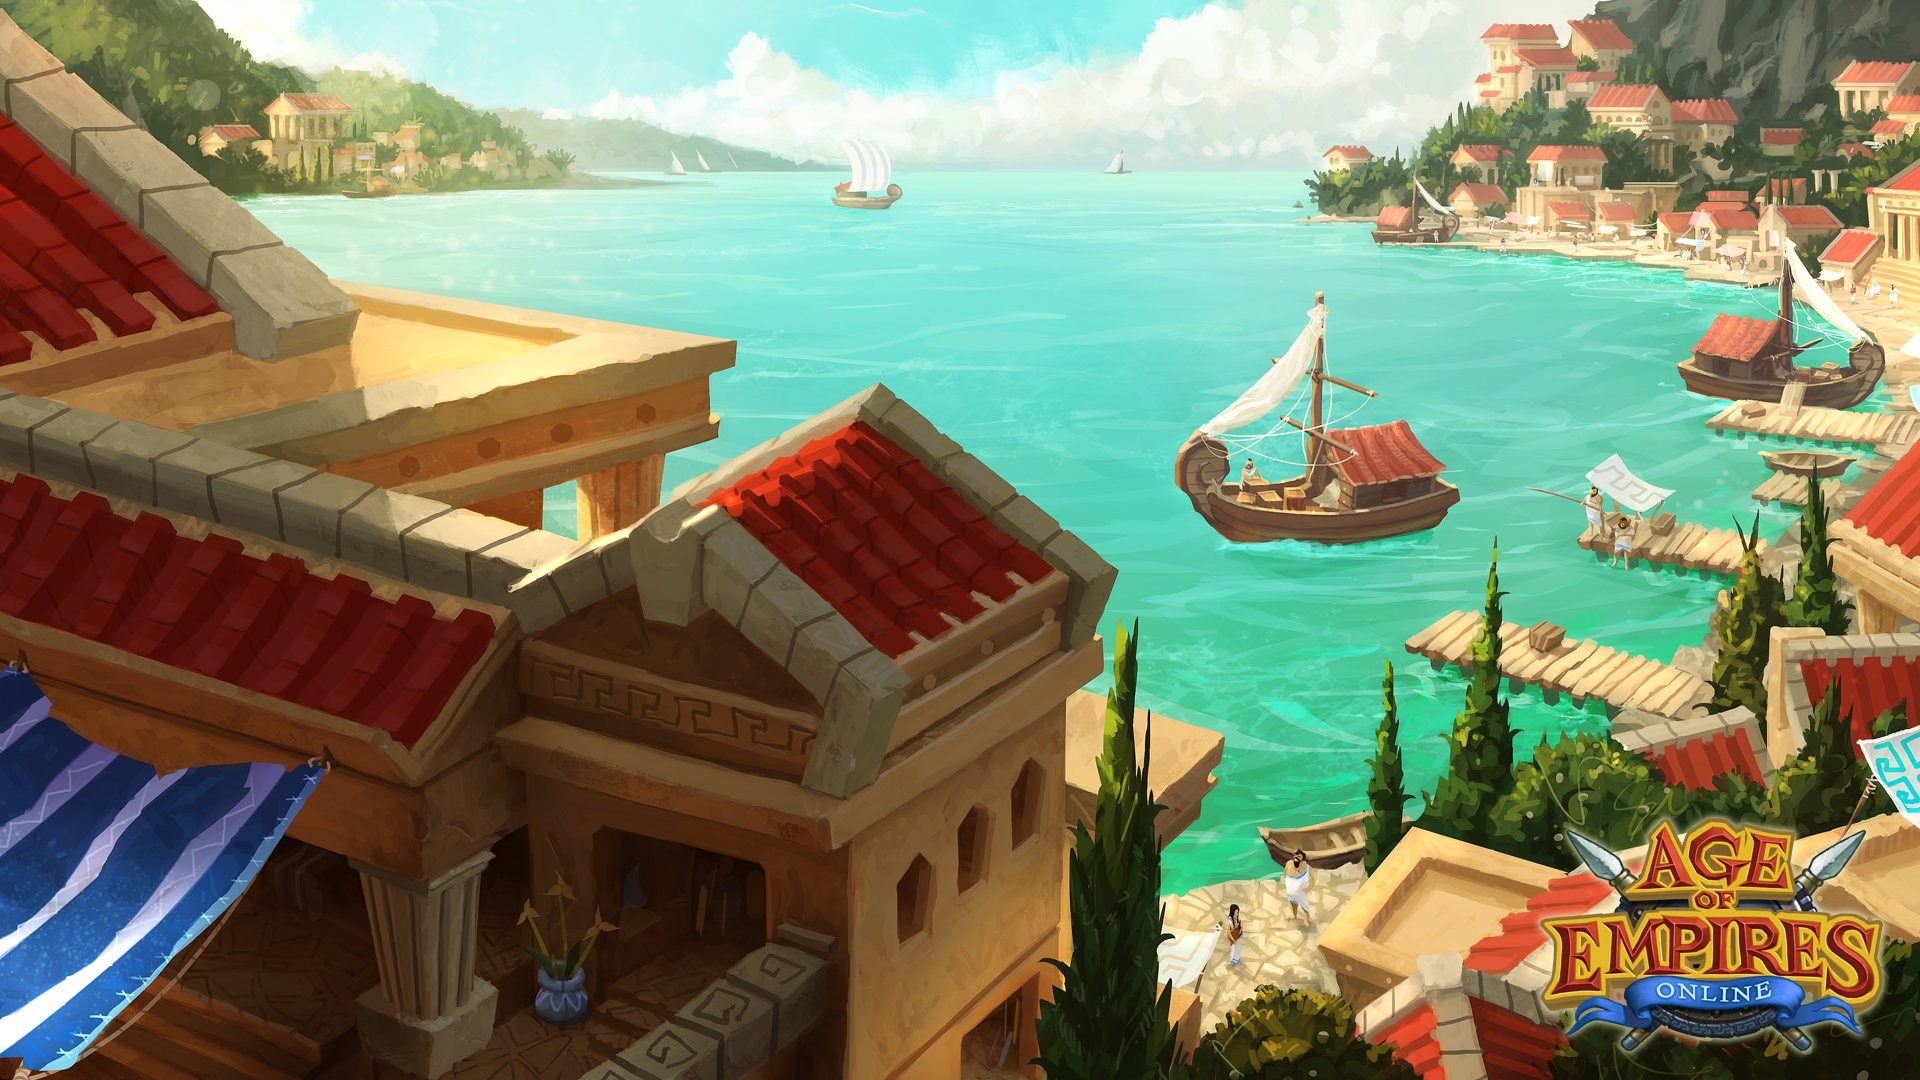 Age of Empires Online wallpaper 1